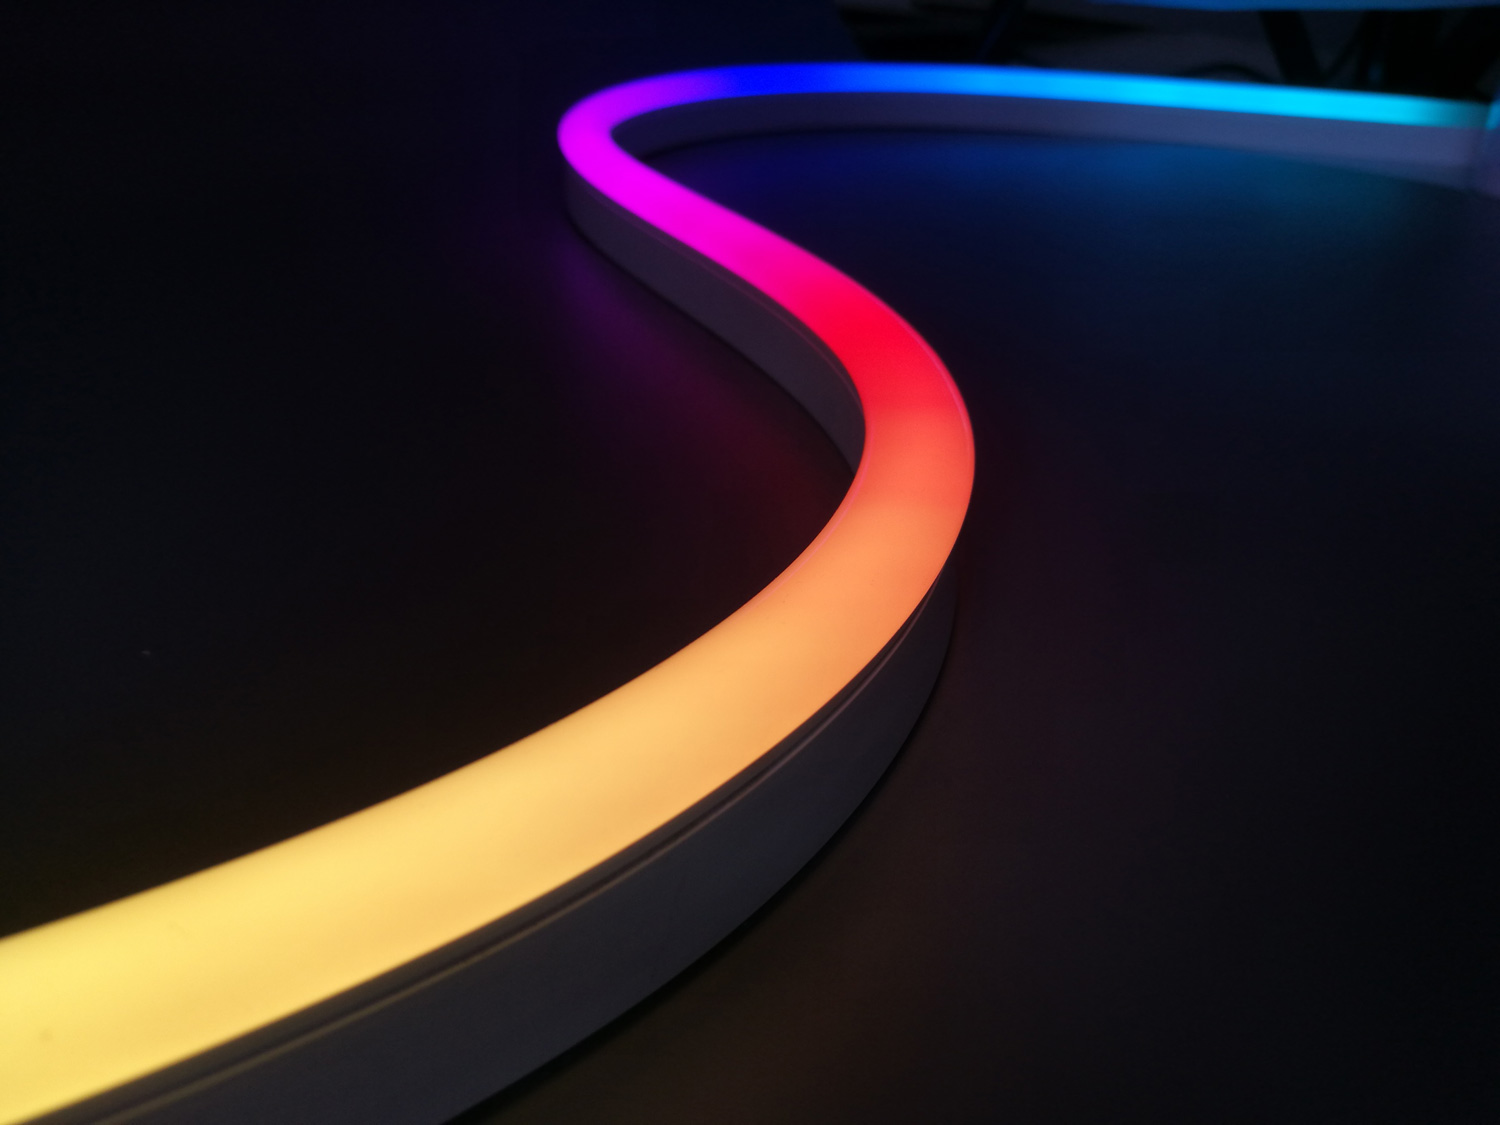 High Performance Dotless Flexible Neon LED Strip Lights LG10S1225_4